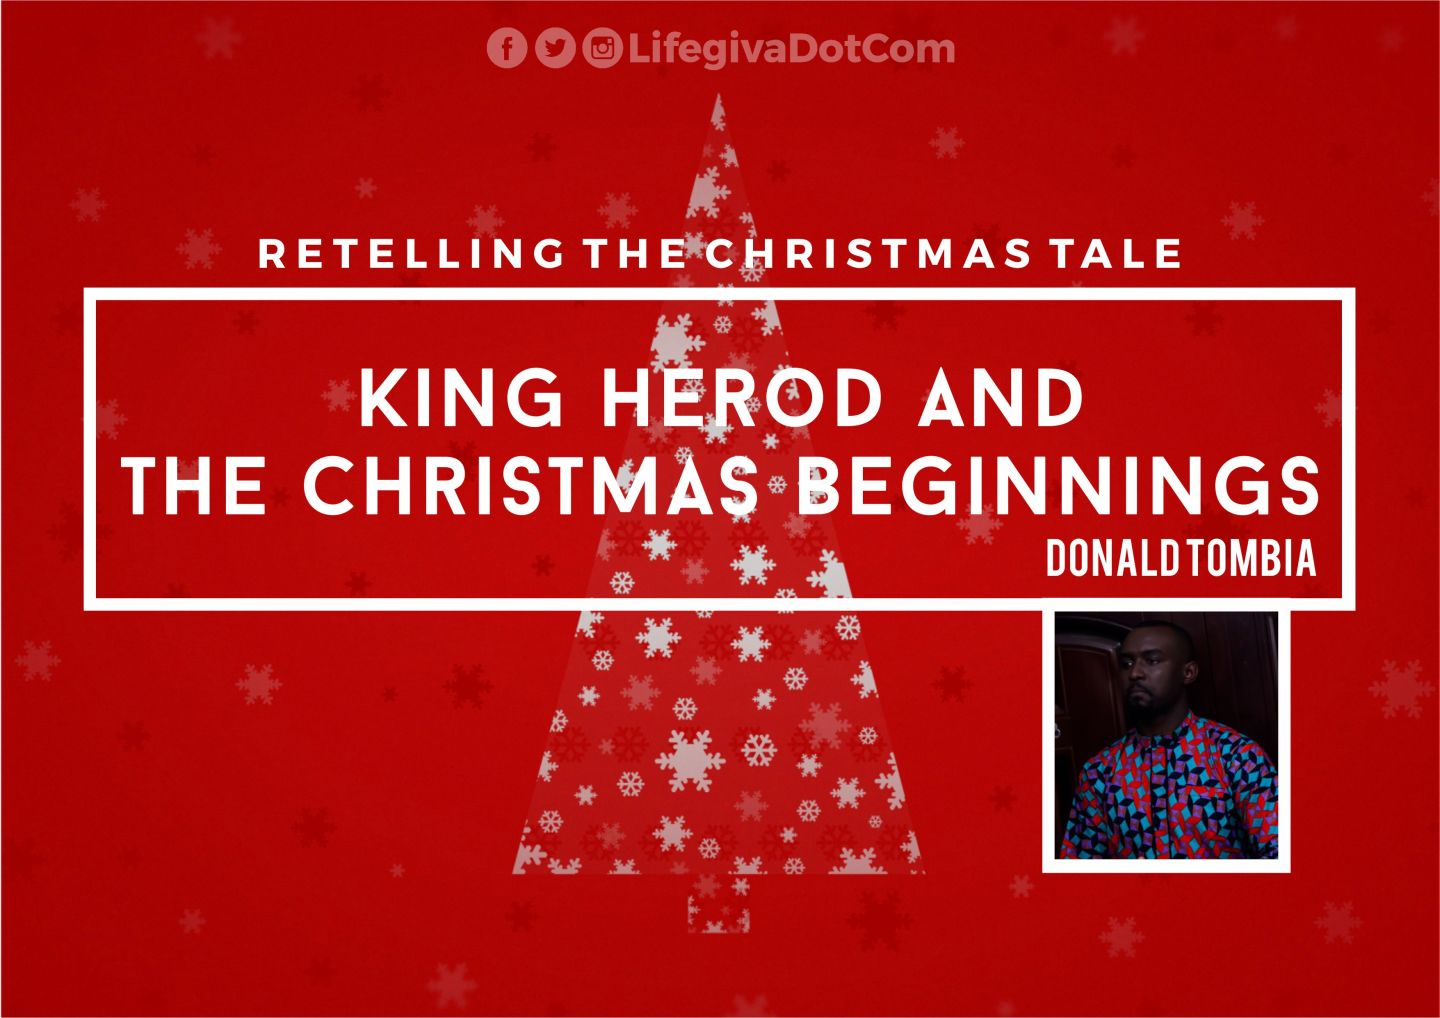 King Herod and the Christmas Beginnings - Donald Tombia